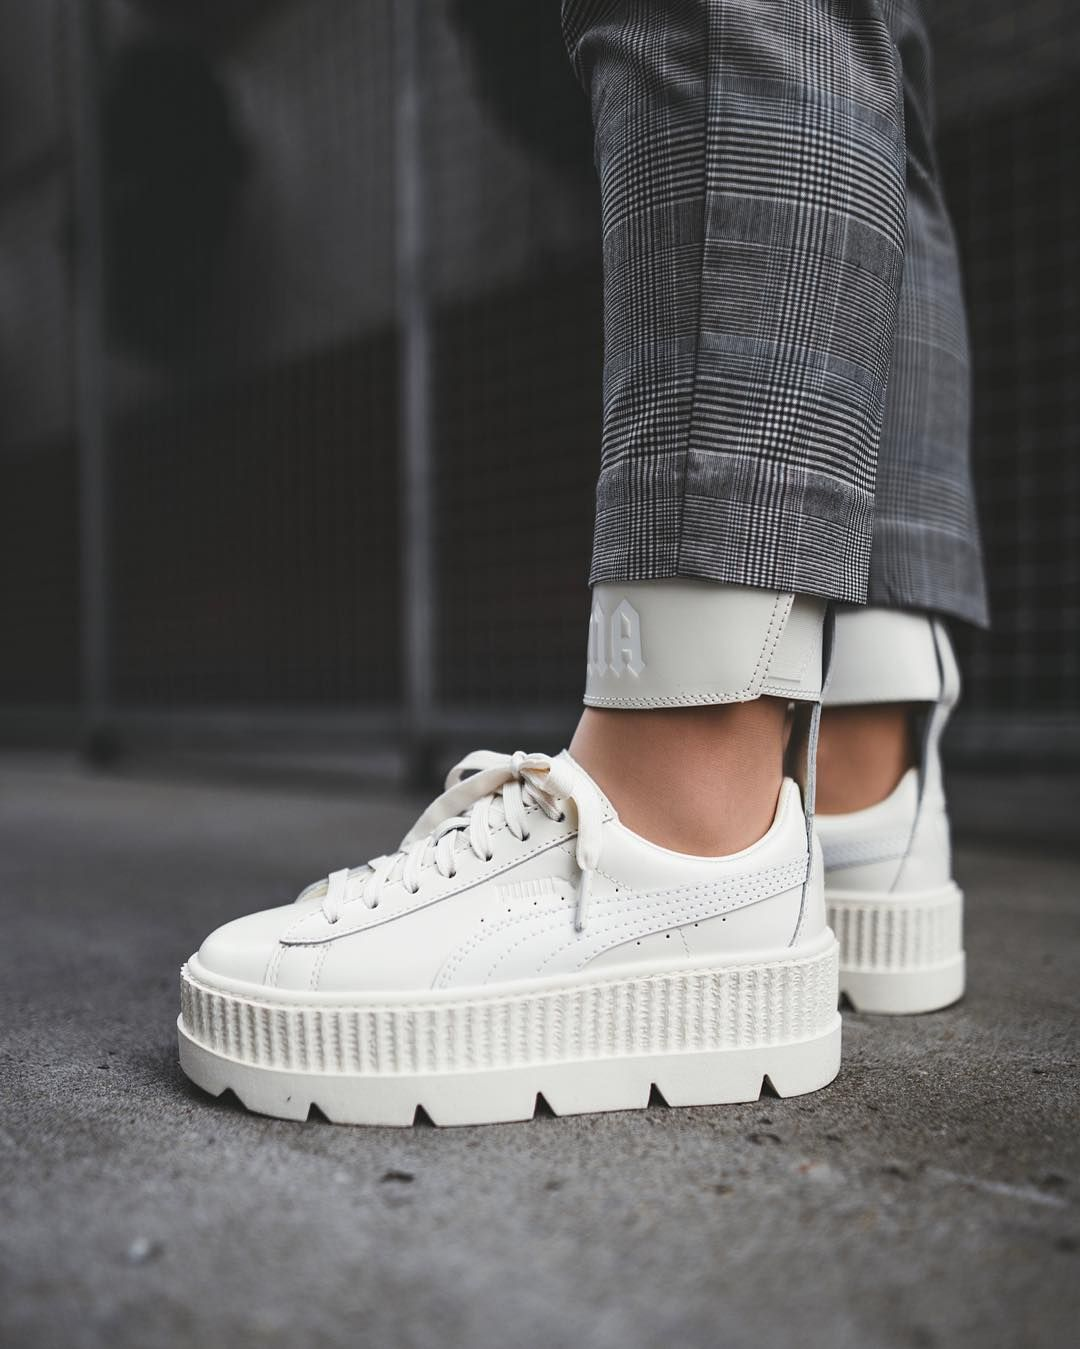 best loved 25e92 3e6d9 Rihanna x Puma Fenty Ankle Strap Creeper